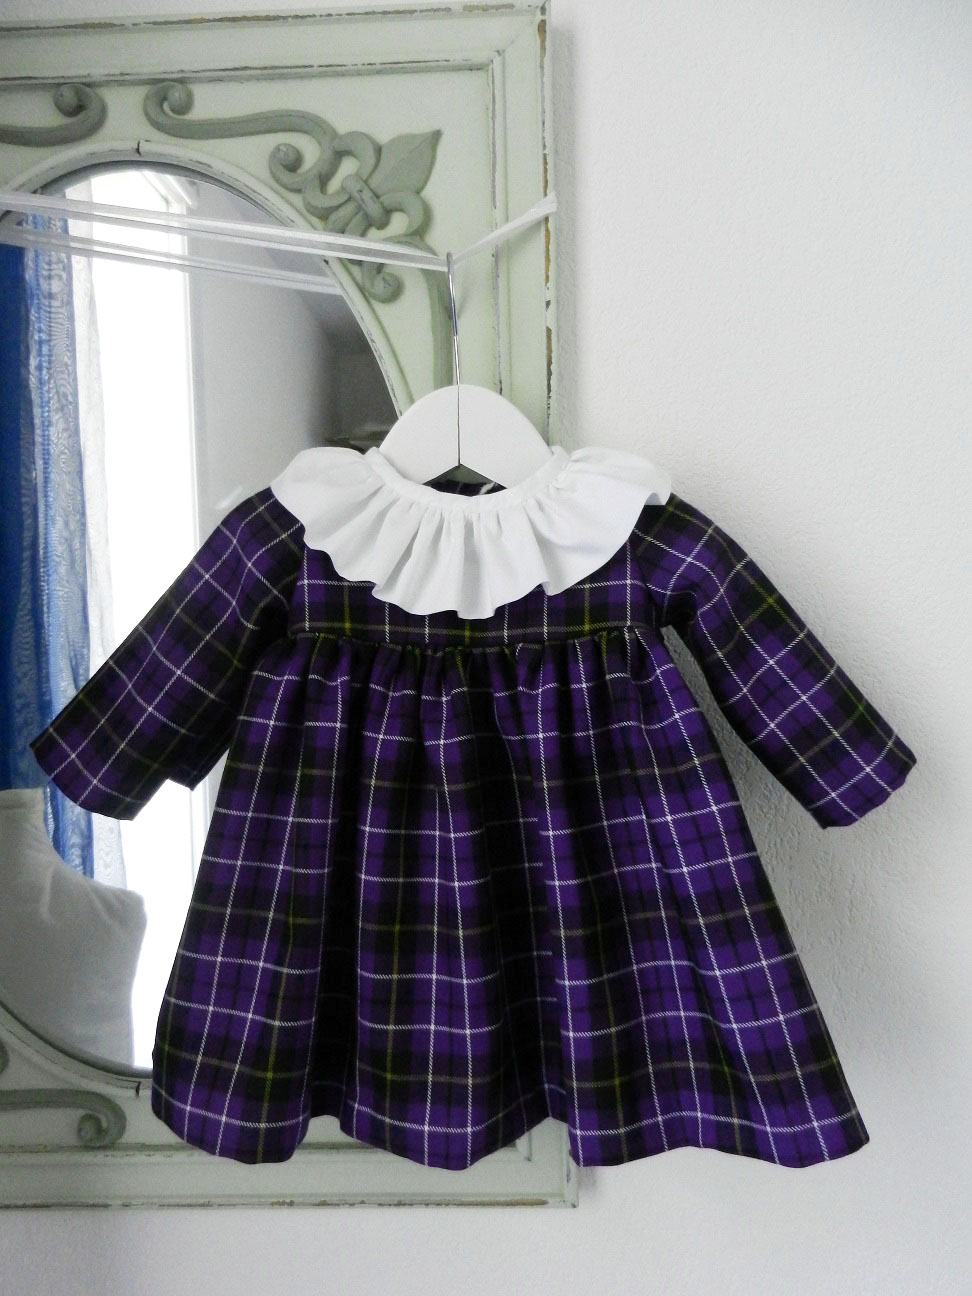 Duchesse or ange doa 281 robe bebe tartan violet col fronce blanc baby dress purple tartan white frilled collar a